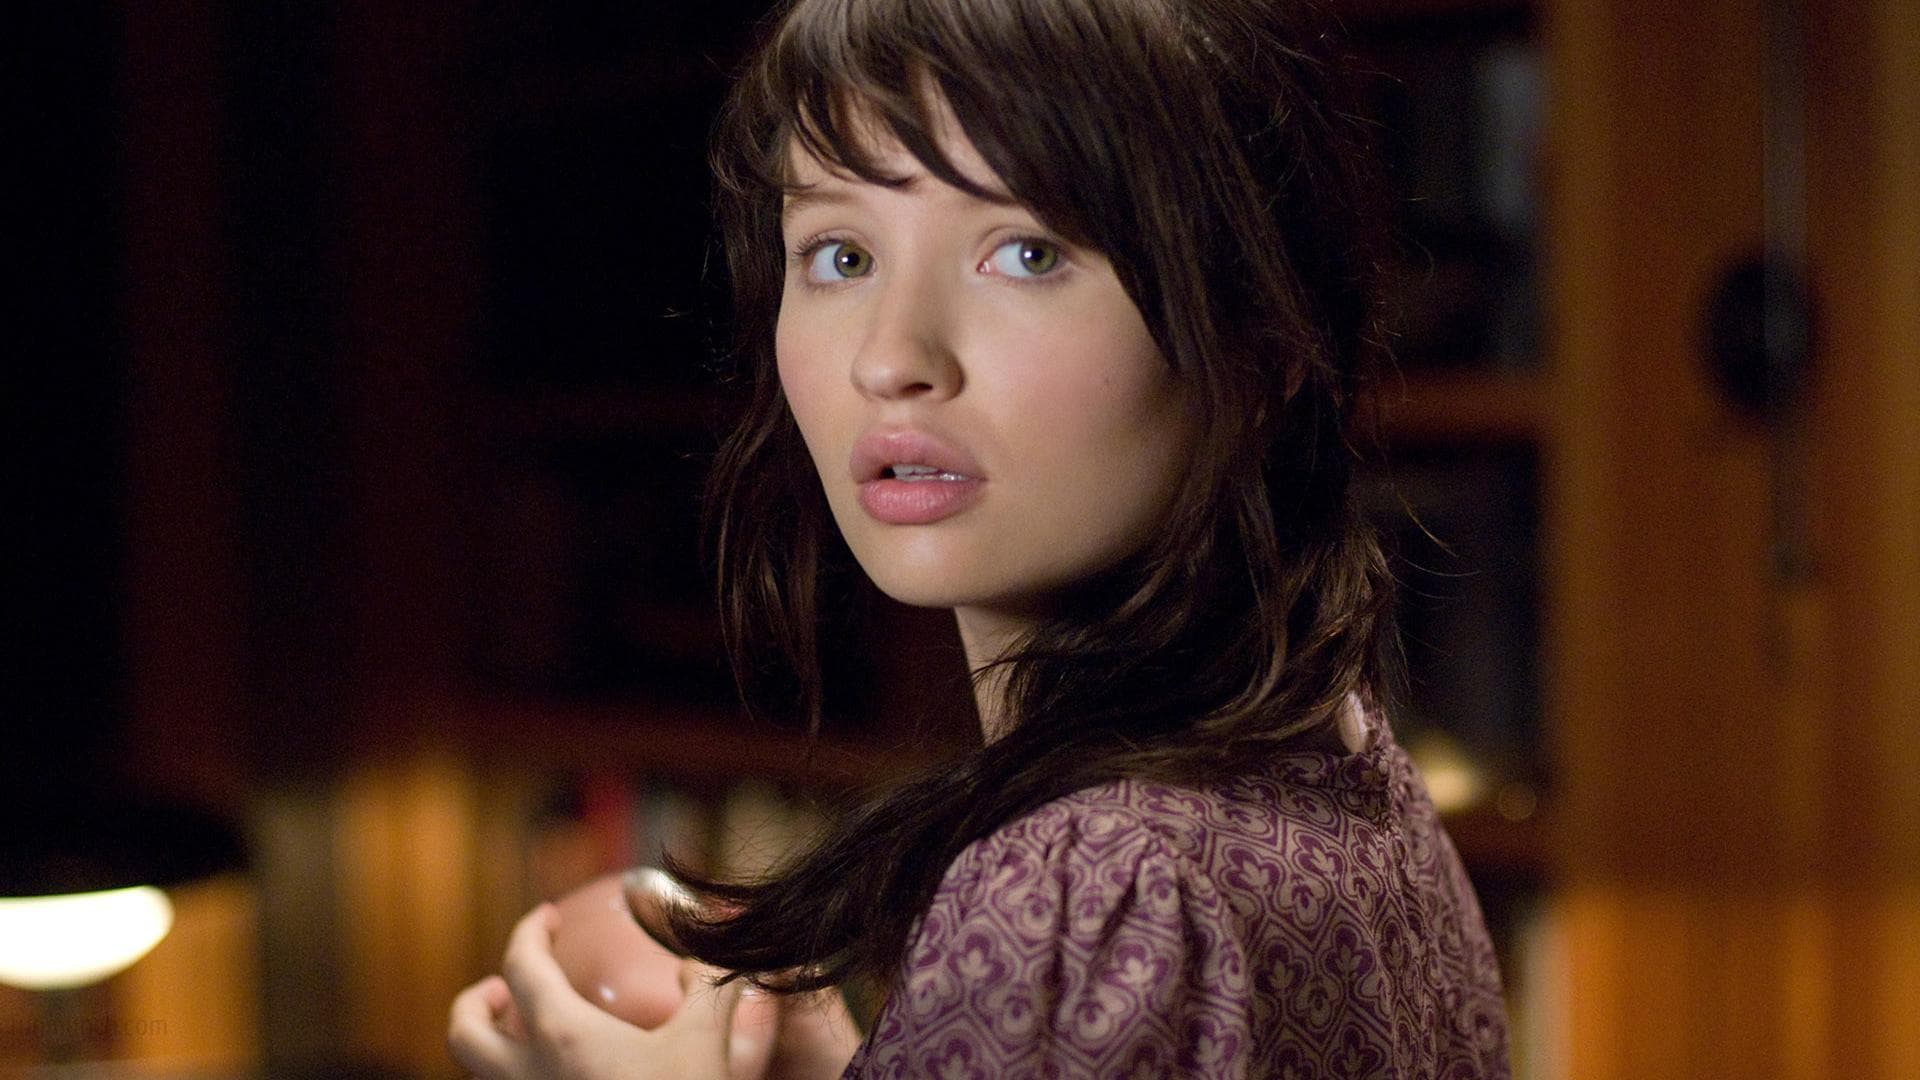 Emily Browning Widescreen for desktop